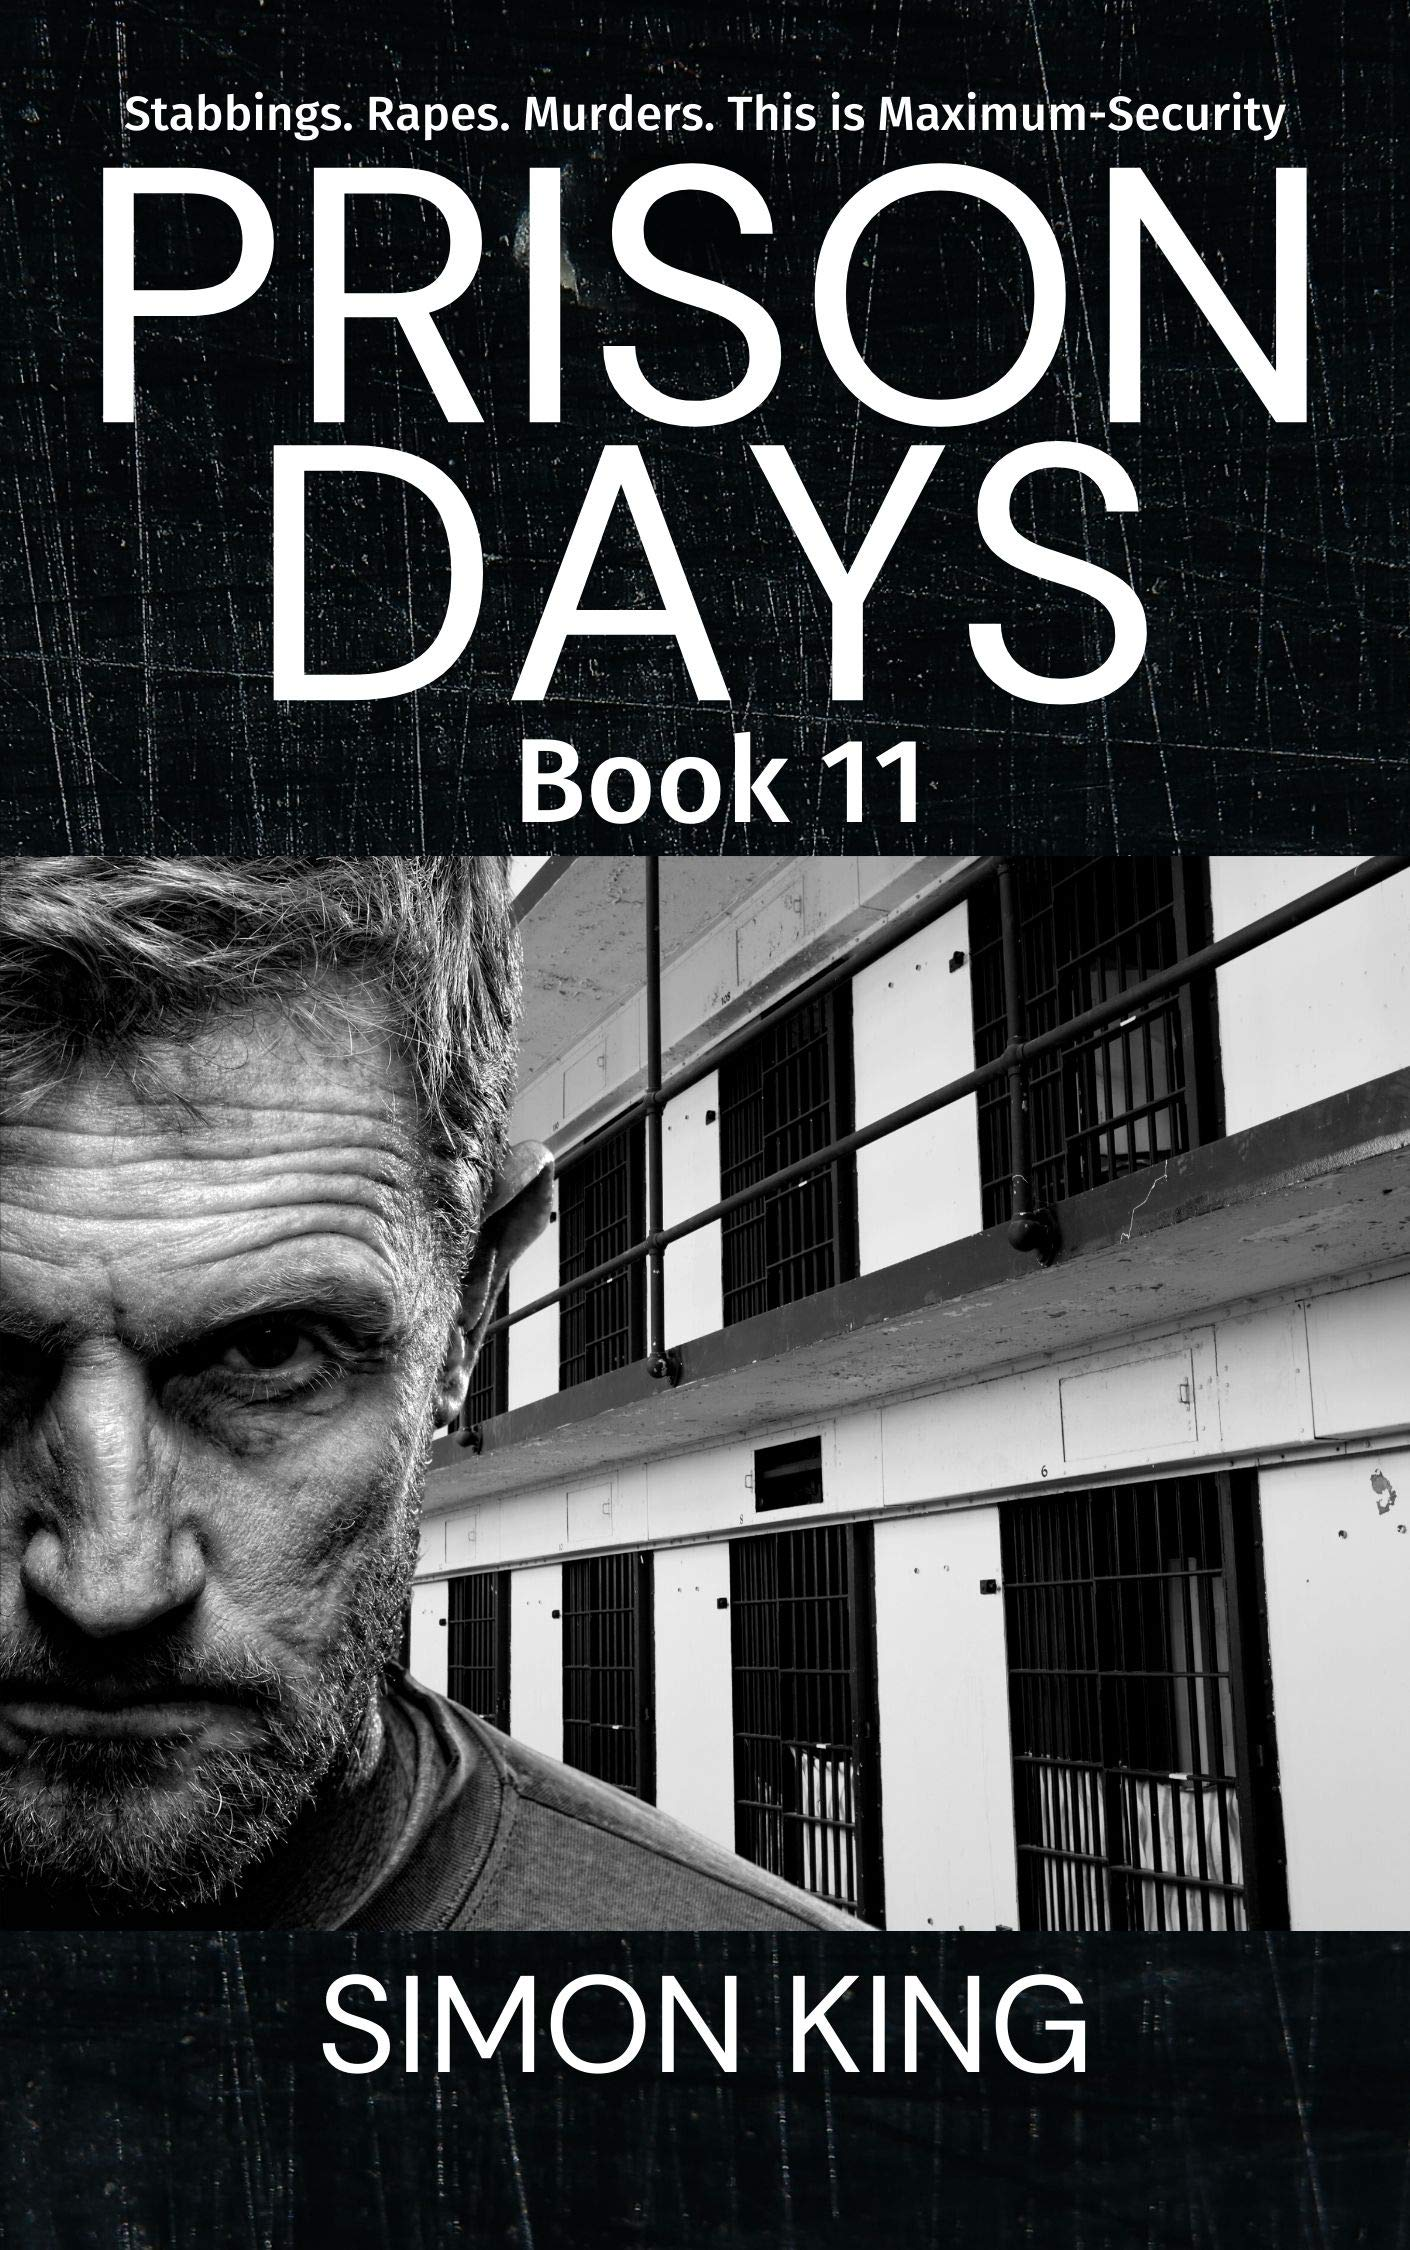 Prison Days Book 11: A True Crime and Prison Biography